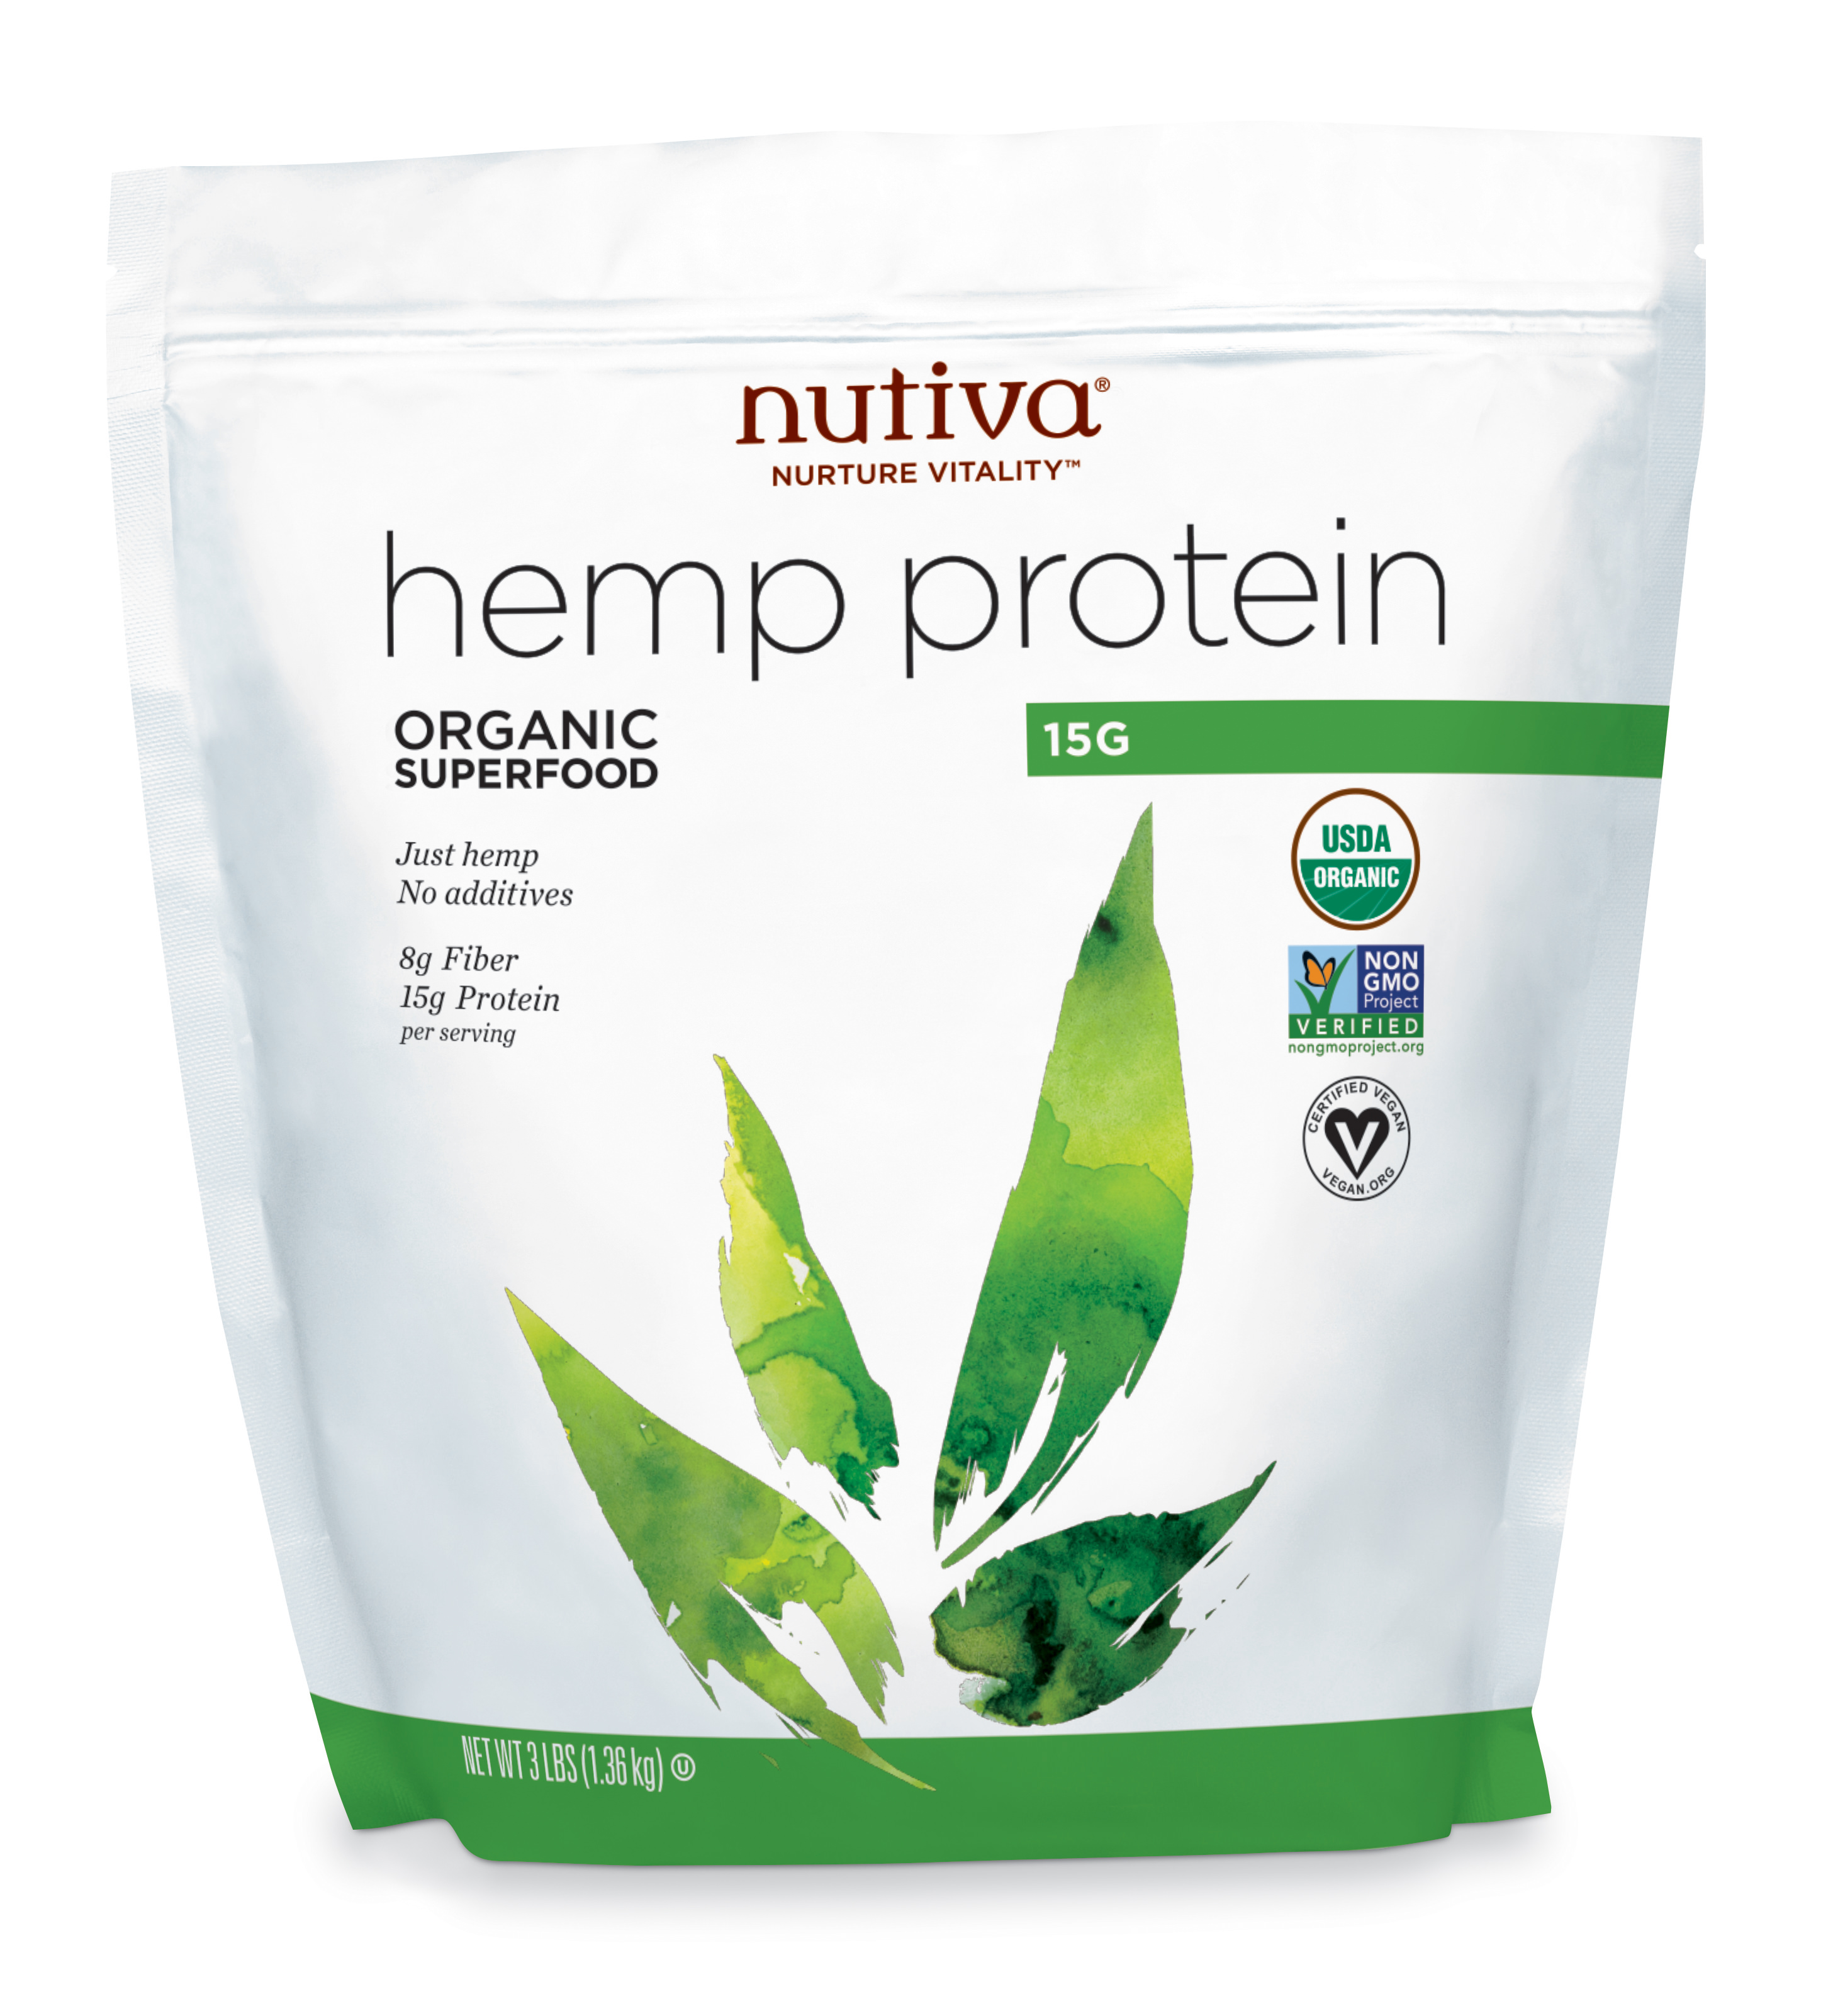 Nutiva Organic Hemp Protein Powder, 15G, 3.0 Lb, 45 Servings